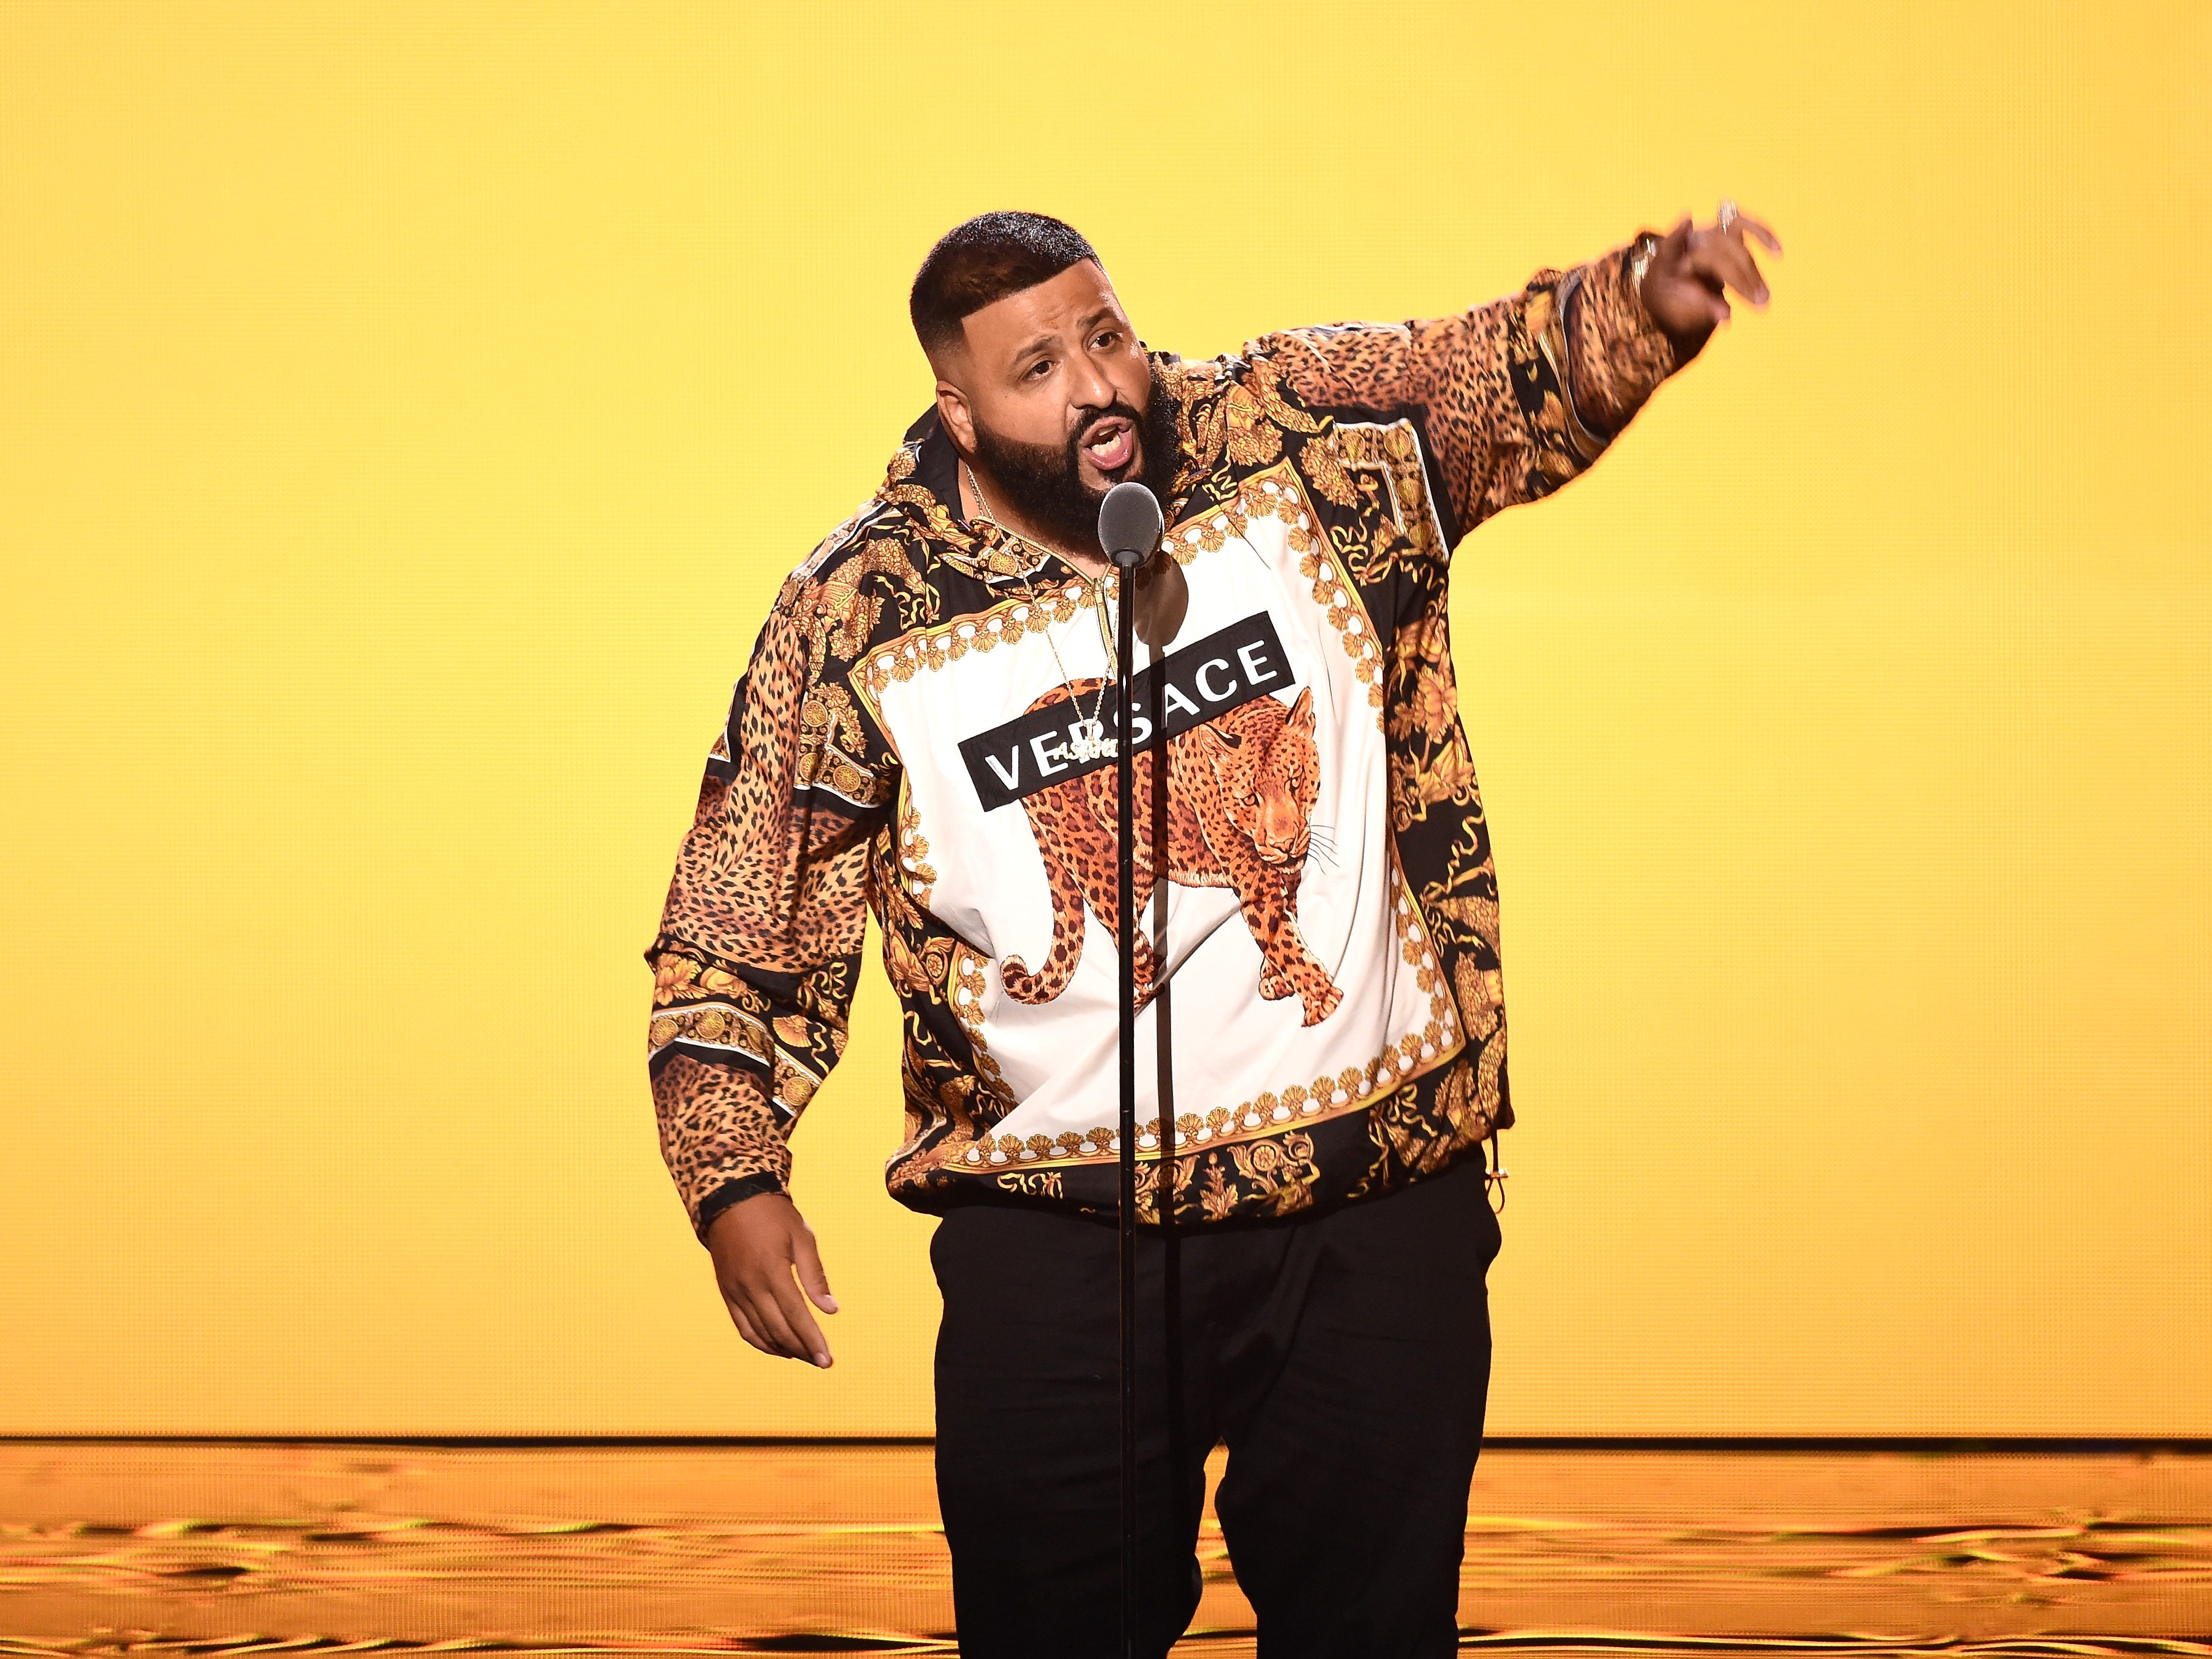 NEW YORK, NY - AUGUST 20:  DJ Khaled speaks onstage during the 2018 MTV Video Music Awards at Radio City Music Hall on August 20, 2018 in New York City.  (Photo by Michael Loccisano/Getty Images for MTV) ORG XMIT: 775210297 ORIG FILE ID: 1020392276